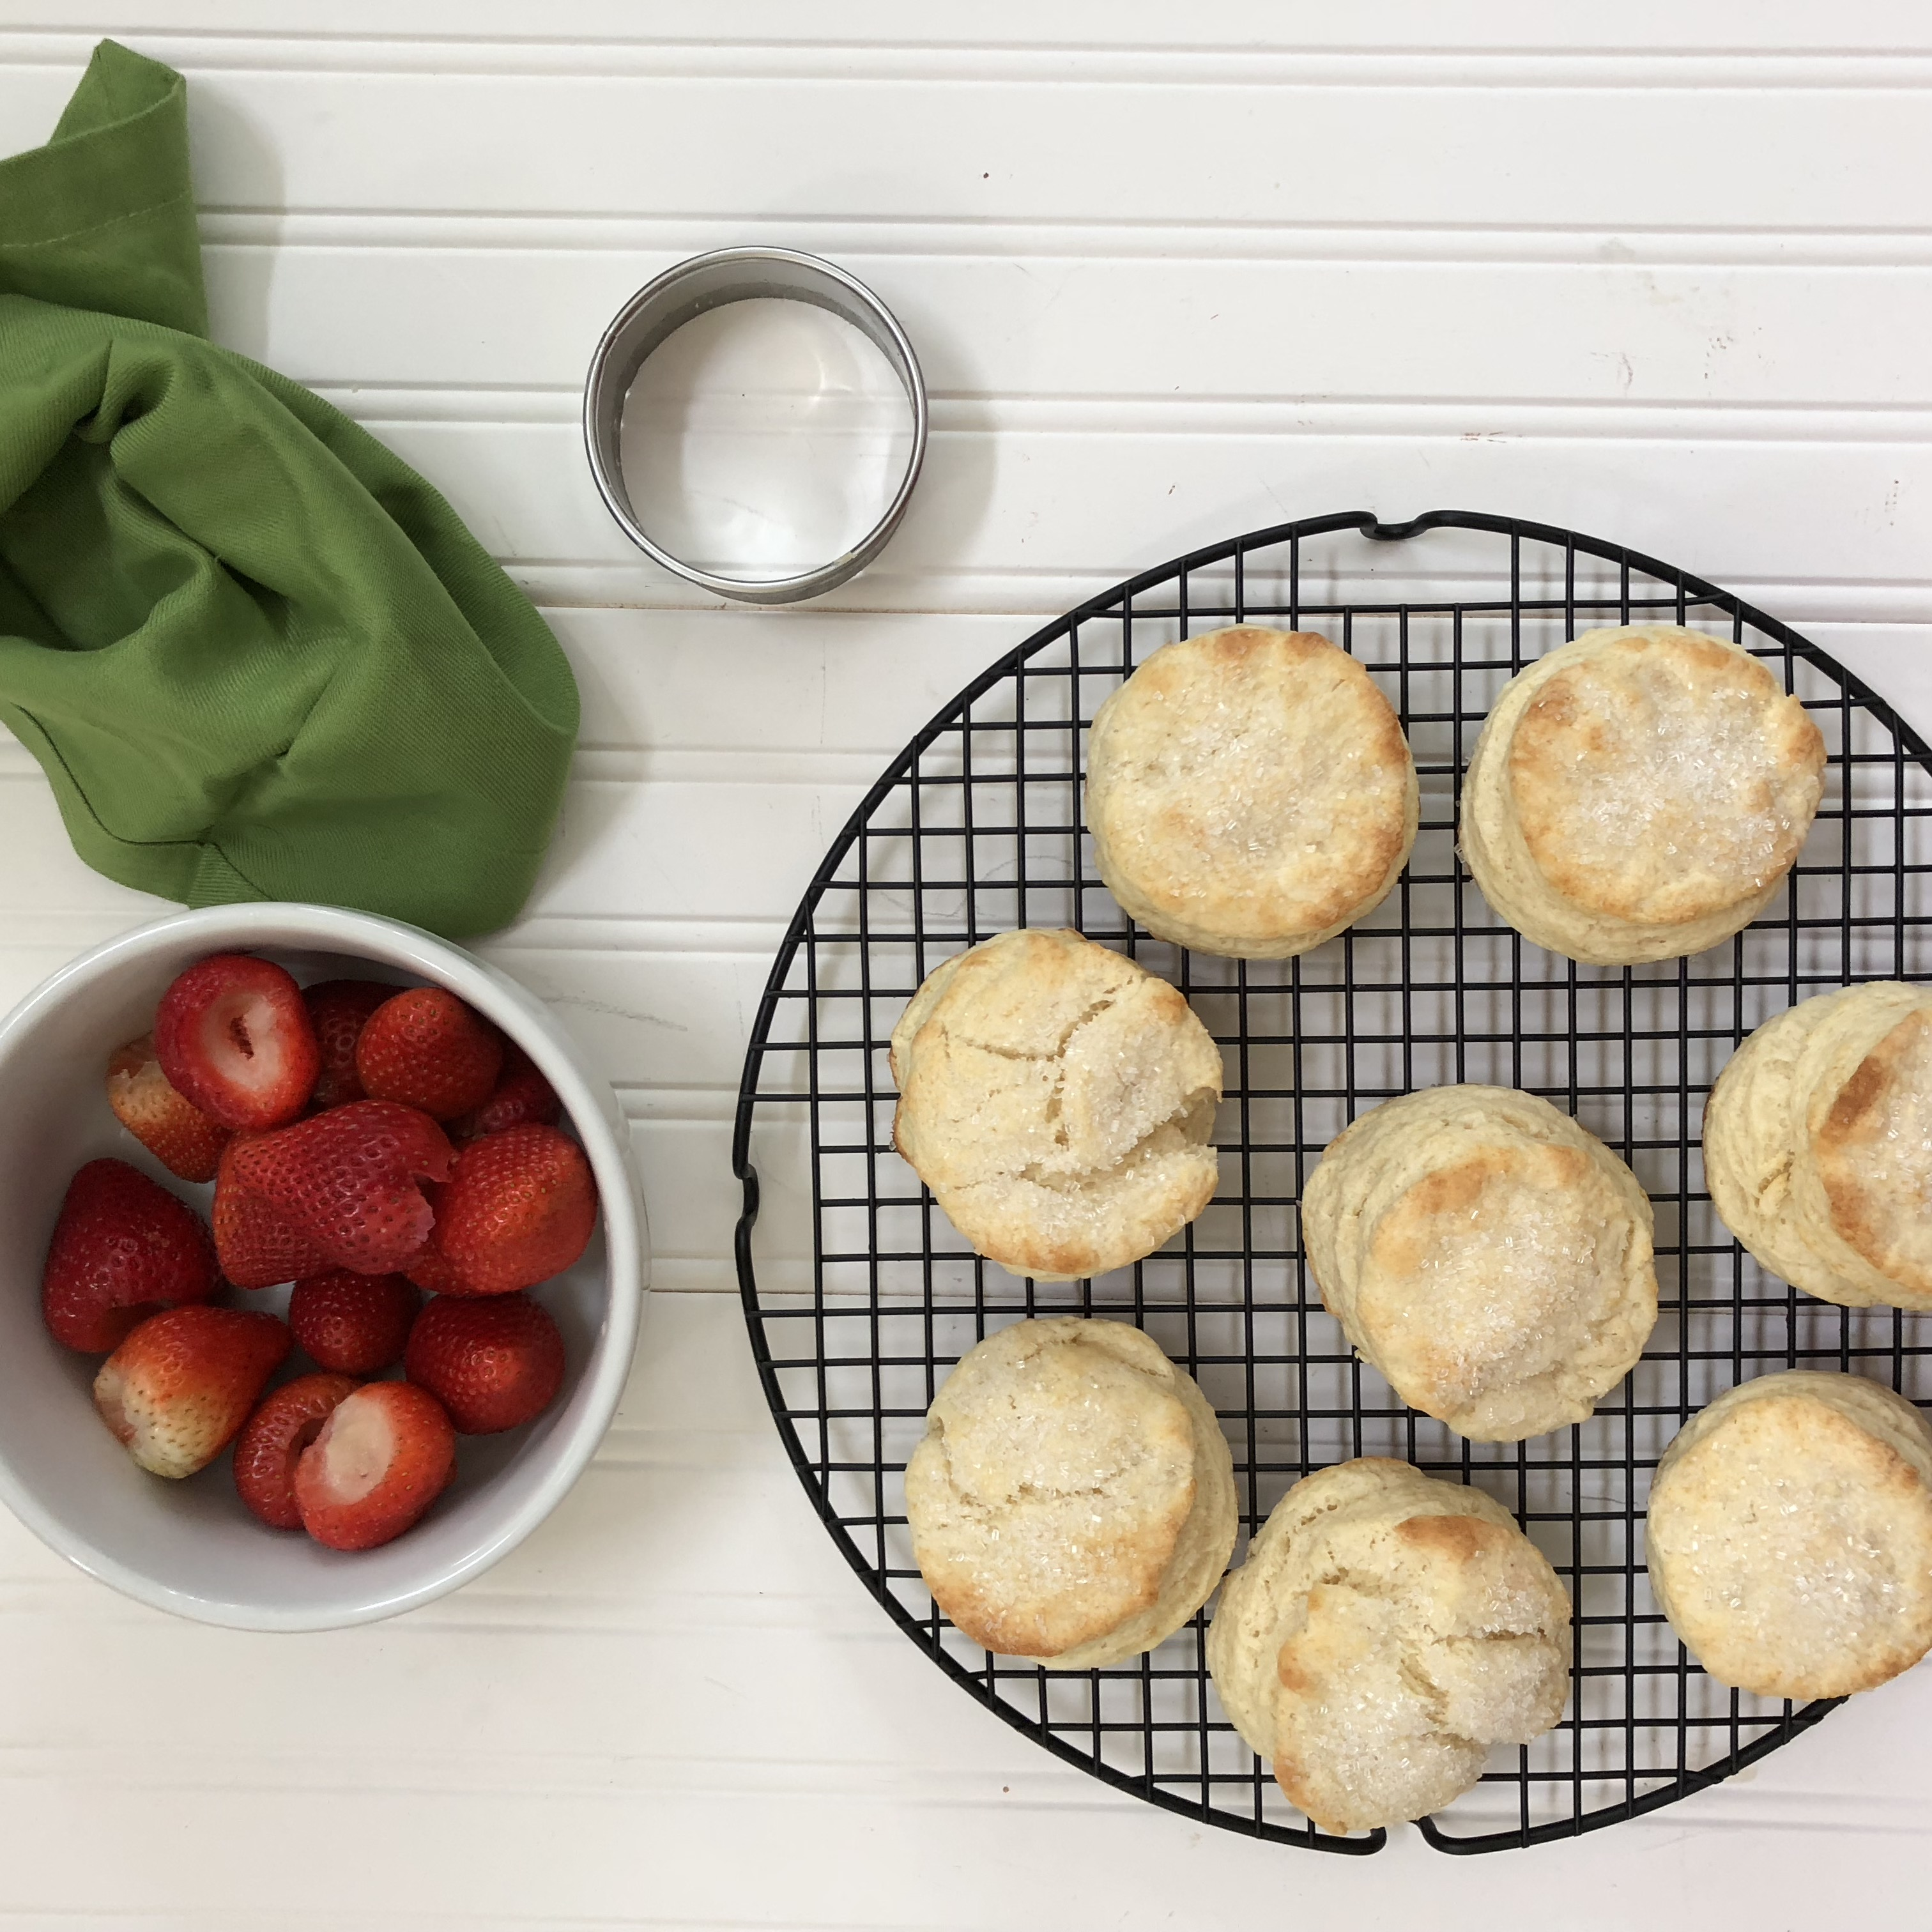 strawberry shortcake biscuits bowl of strawberries